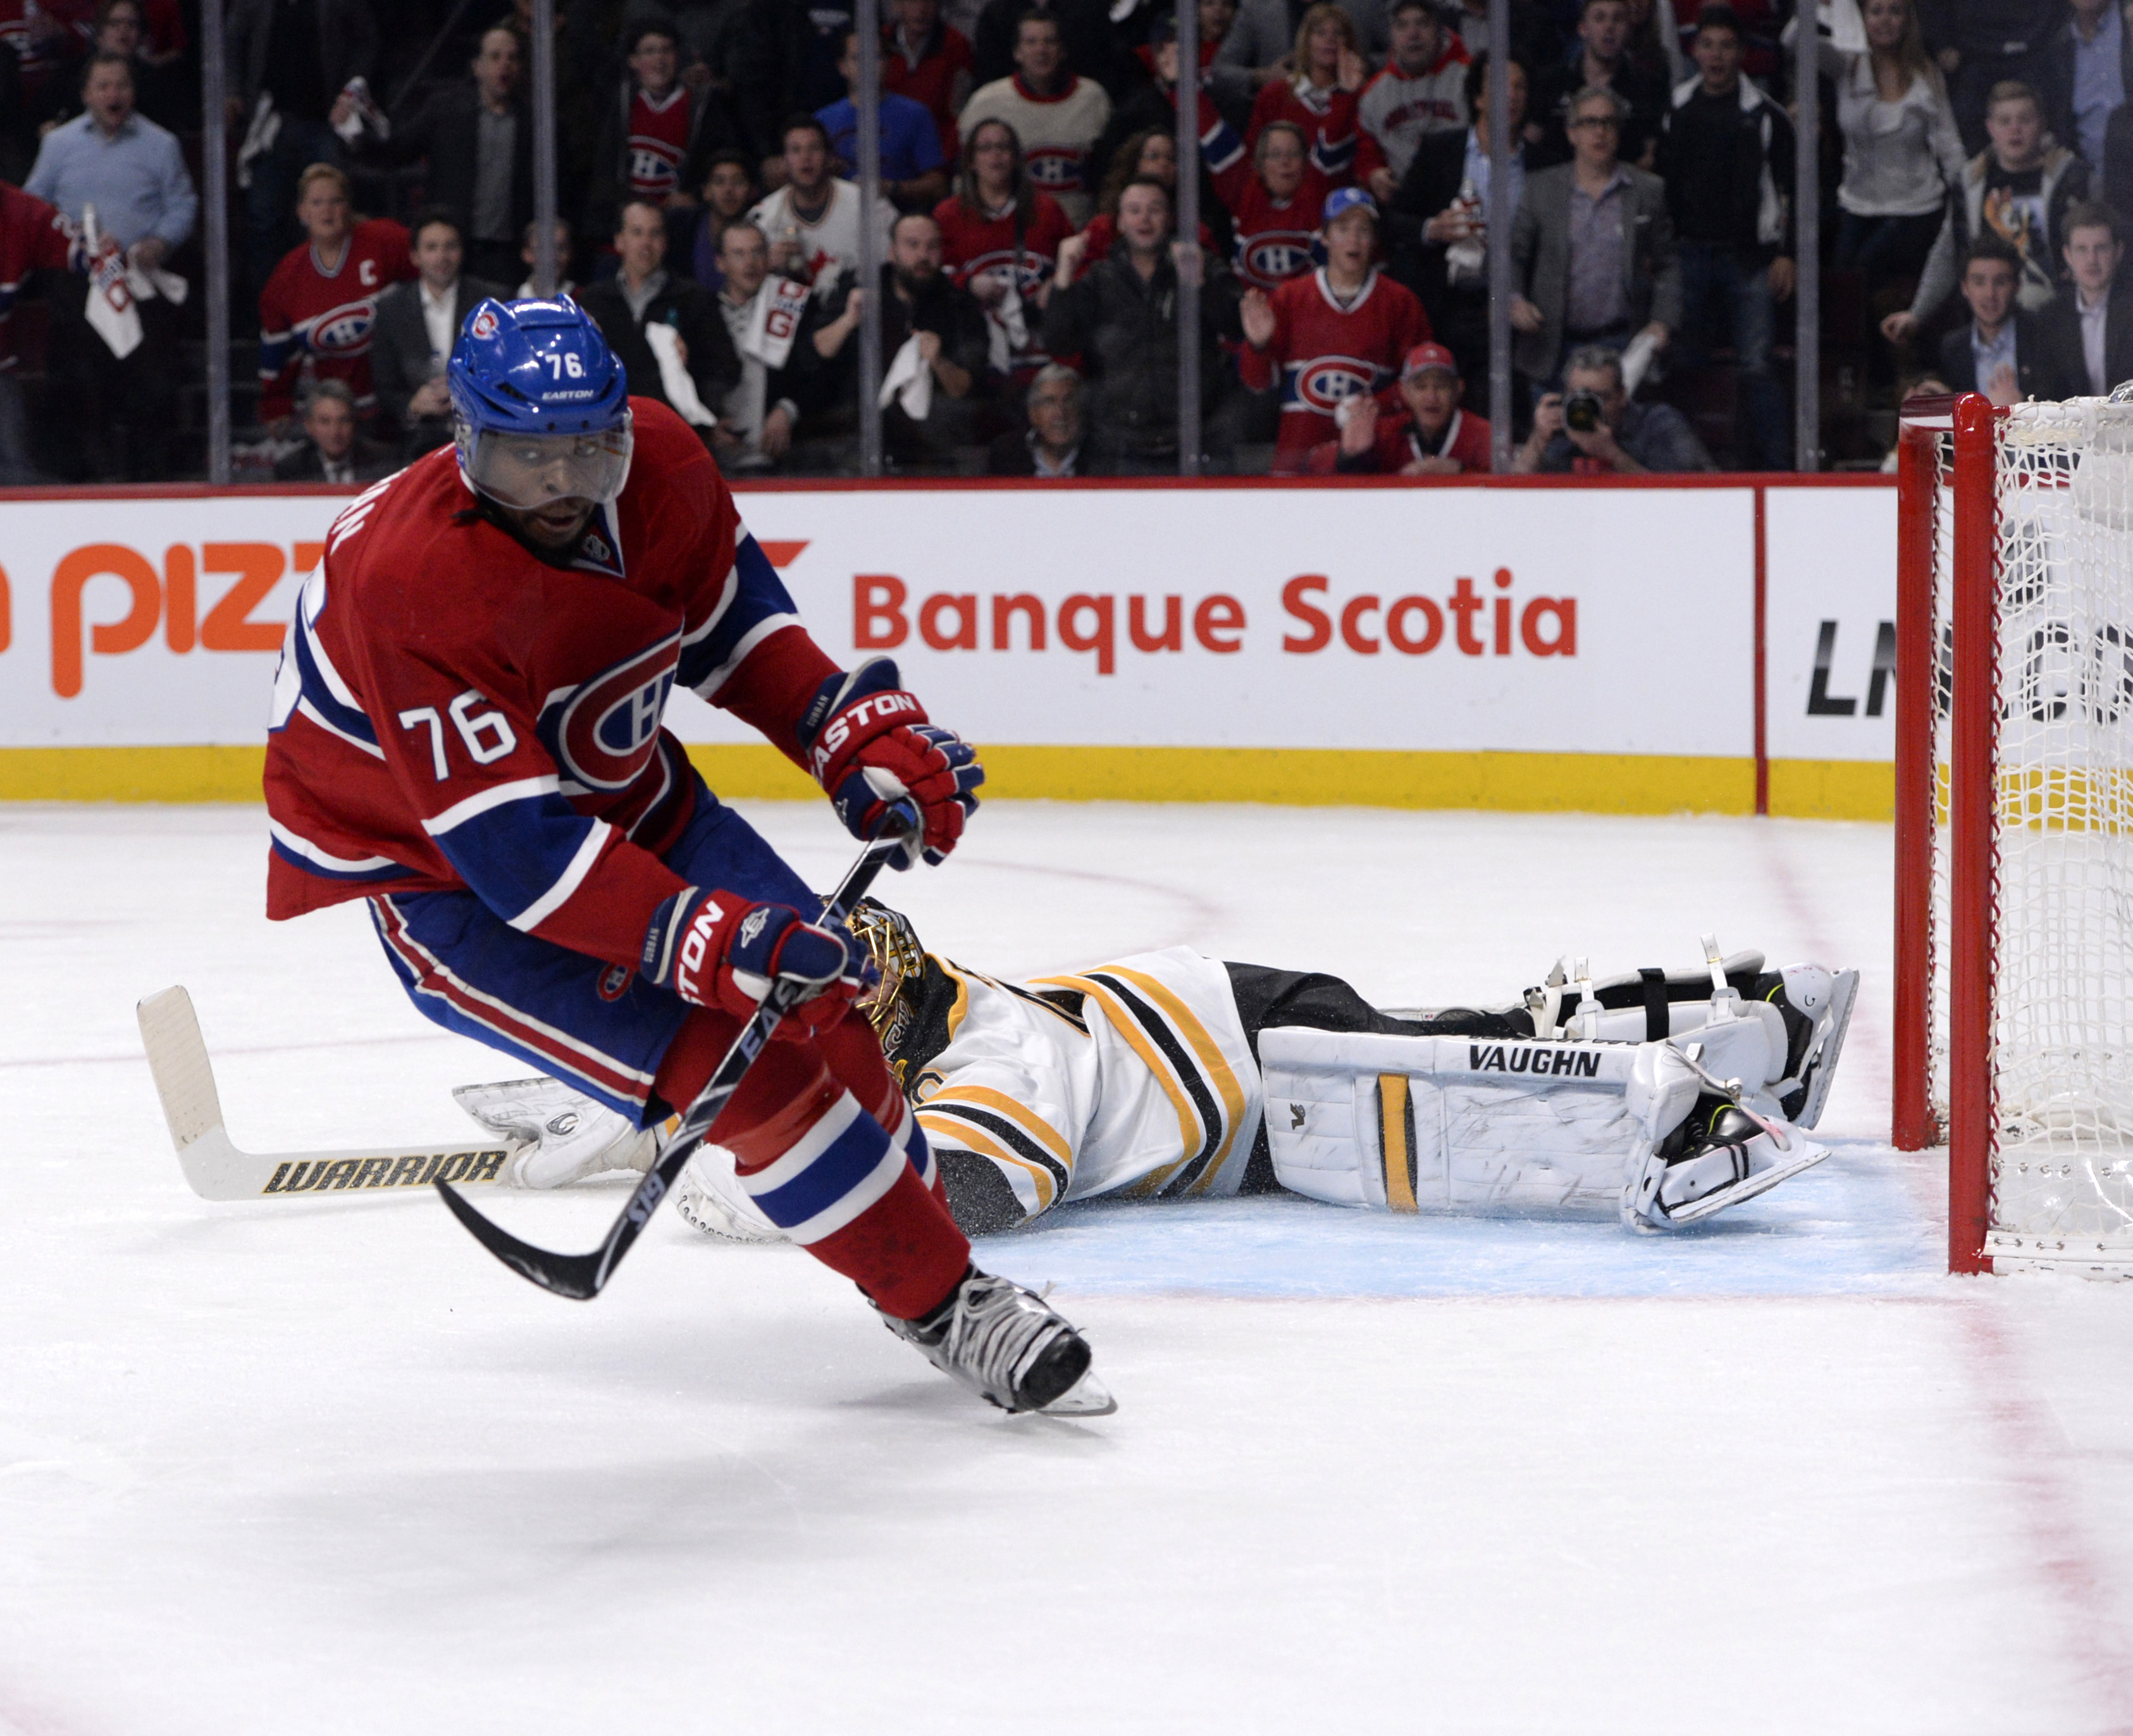 2014-05-07T001819Z_1724418392_NOCID_RTRMADP_3_NHL-STANLEY-CUP-PLAYOFFS-BOSTON-BRUINS-AT-MONTREAL-CANADIENS.jpg